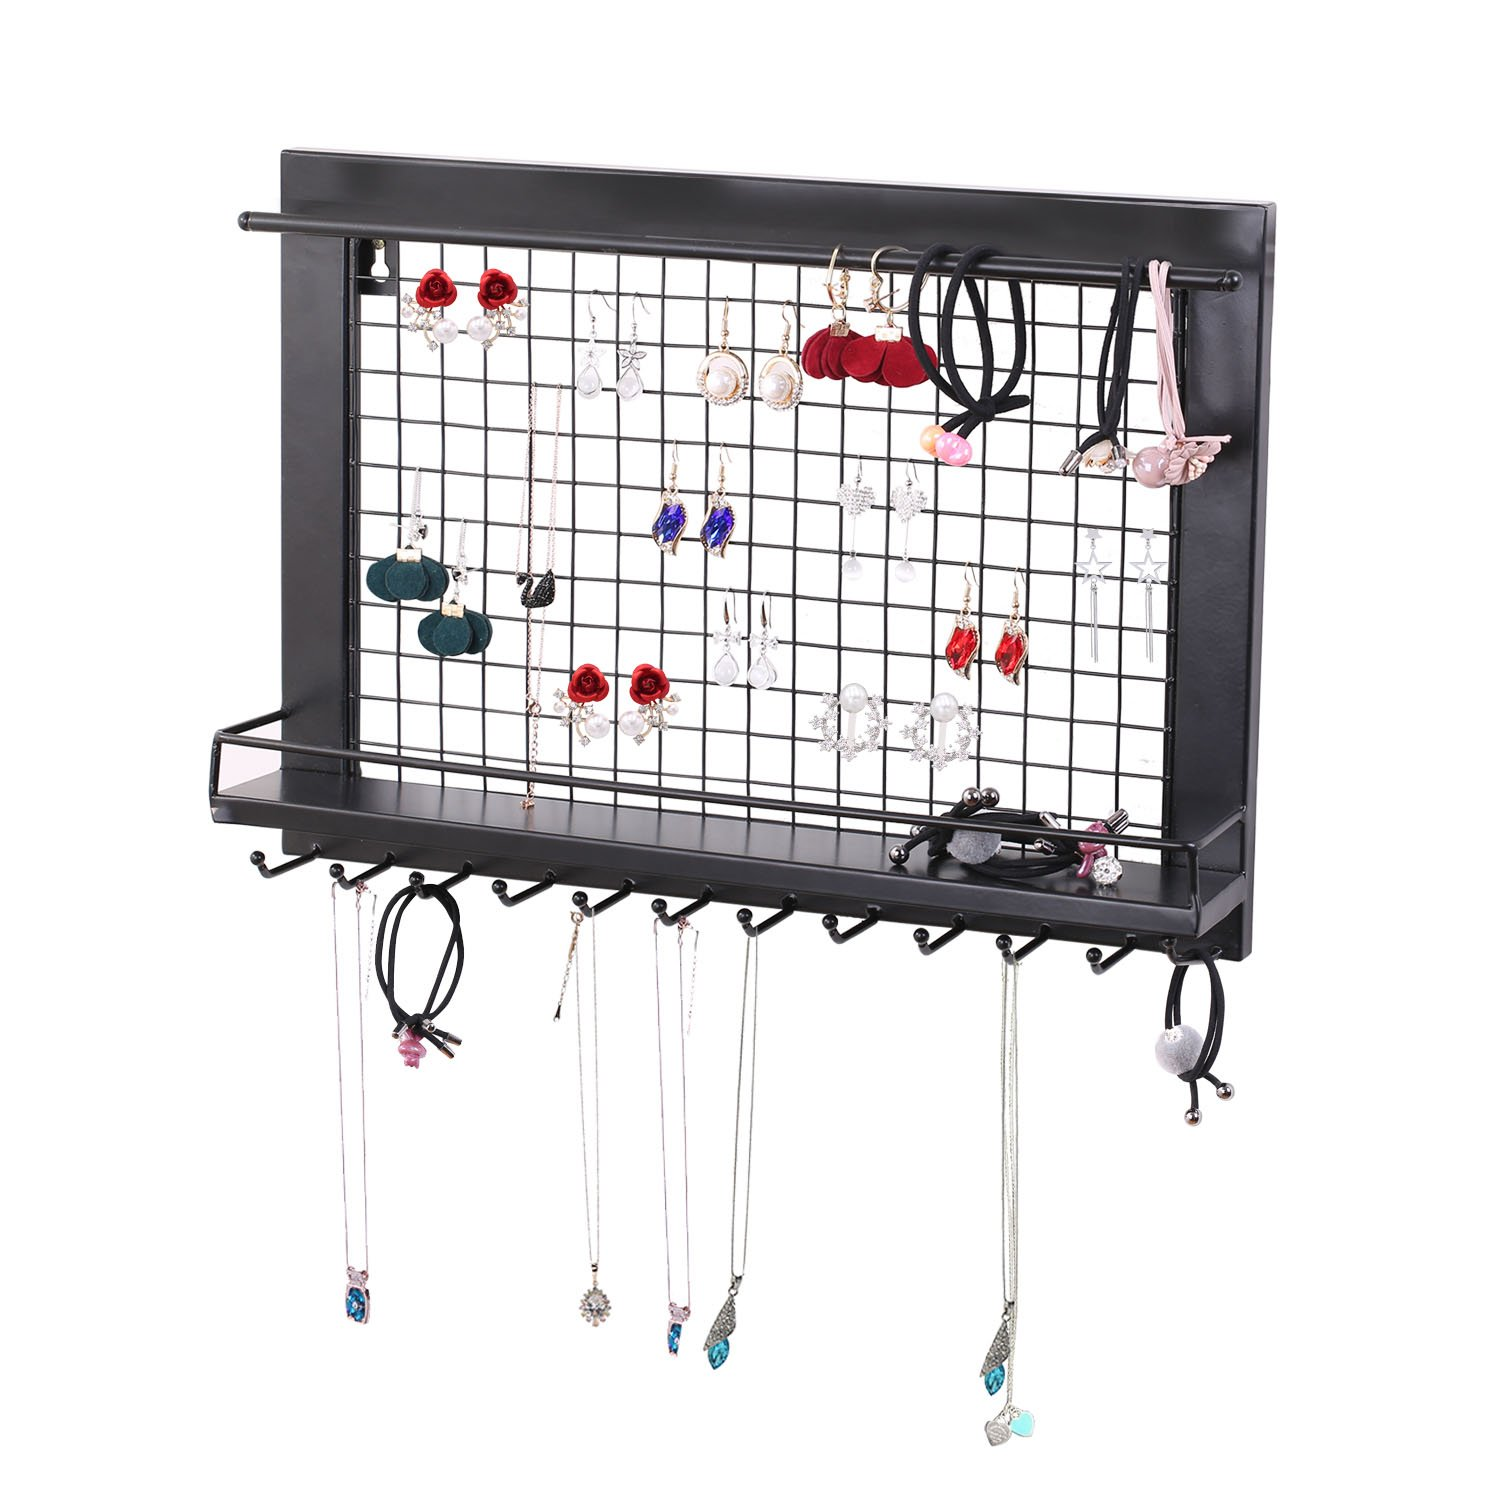 Vencer Wall Mount Jewelry Organizer for Earrings/Necklaces / Bracelets/Accessories VJO-001